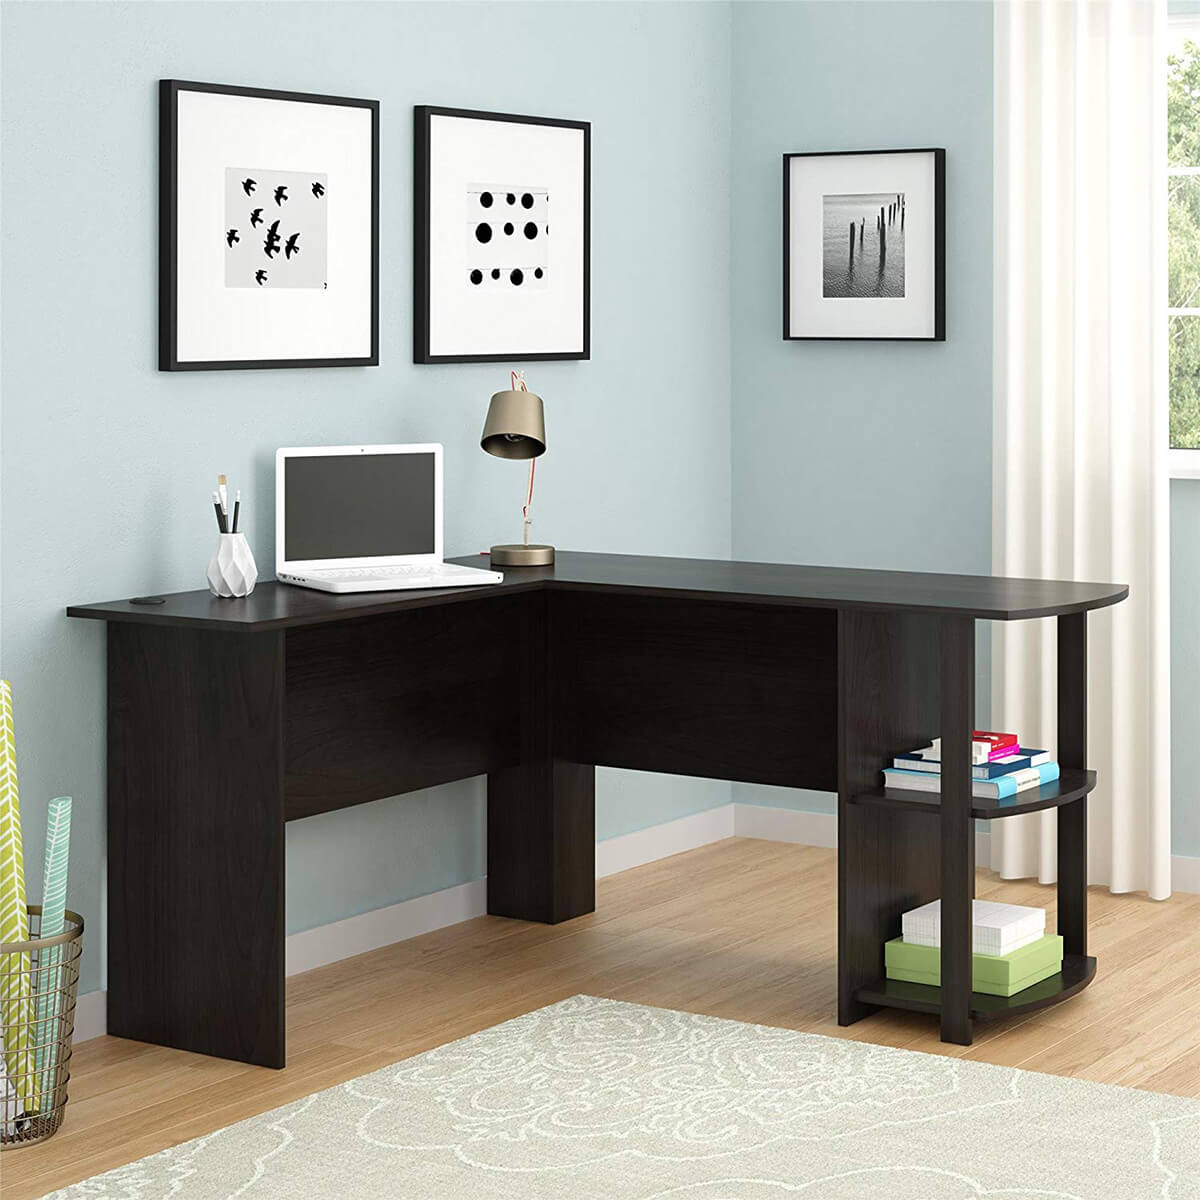 Sleek and Modern L-Shaped Desk